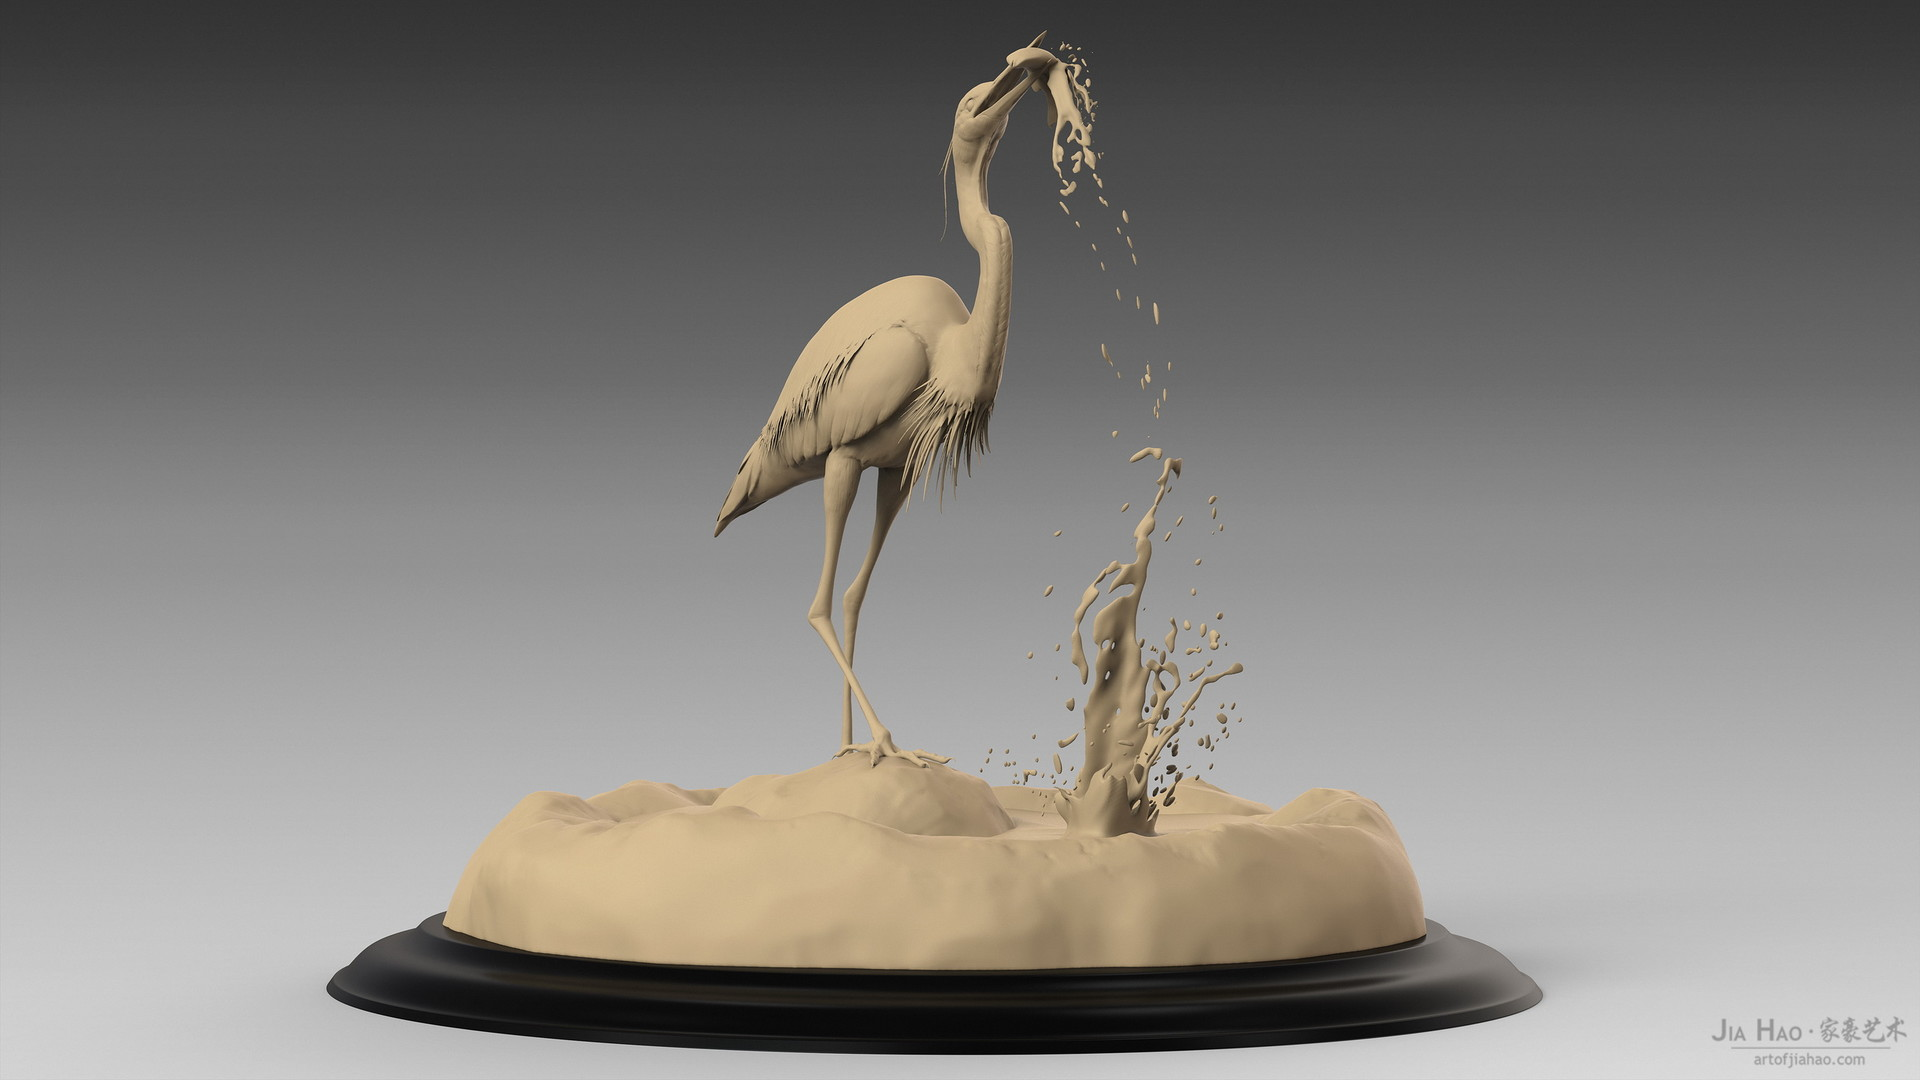 Jia hao blueheron digitalsculpturea 02